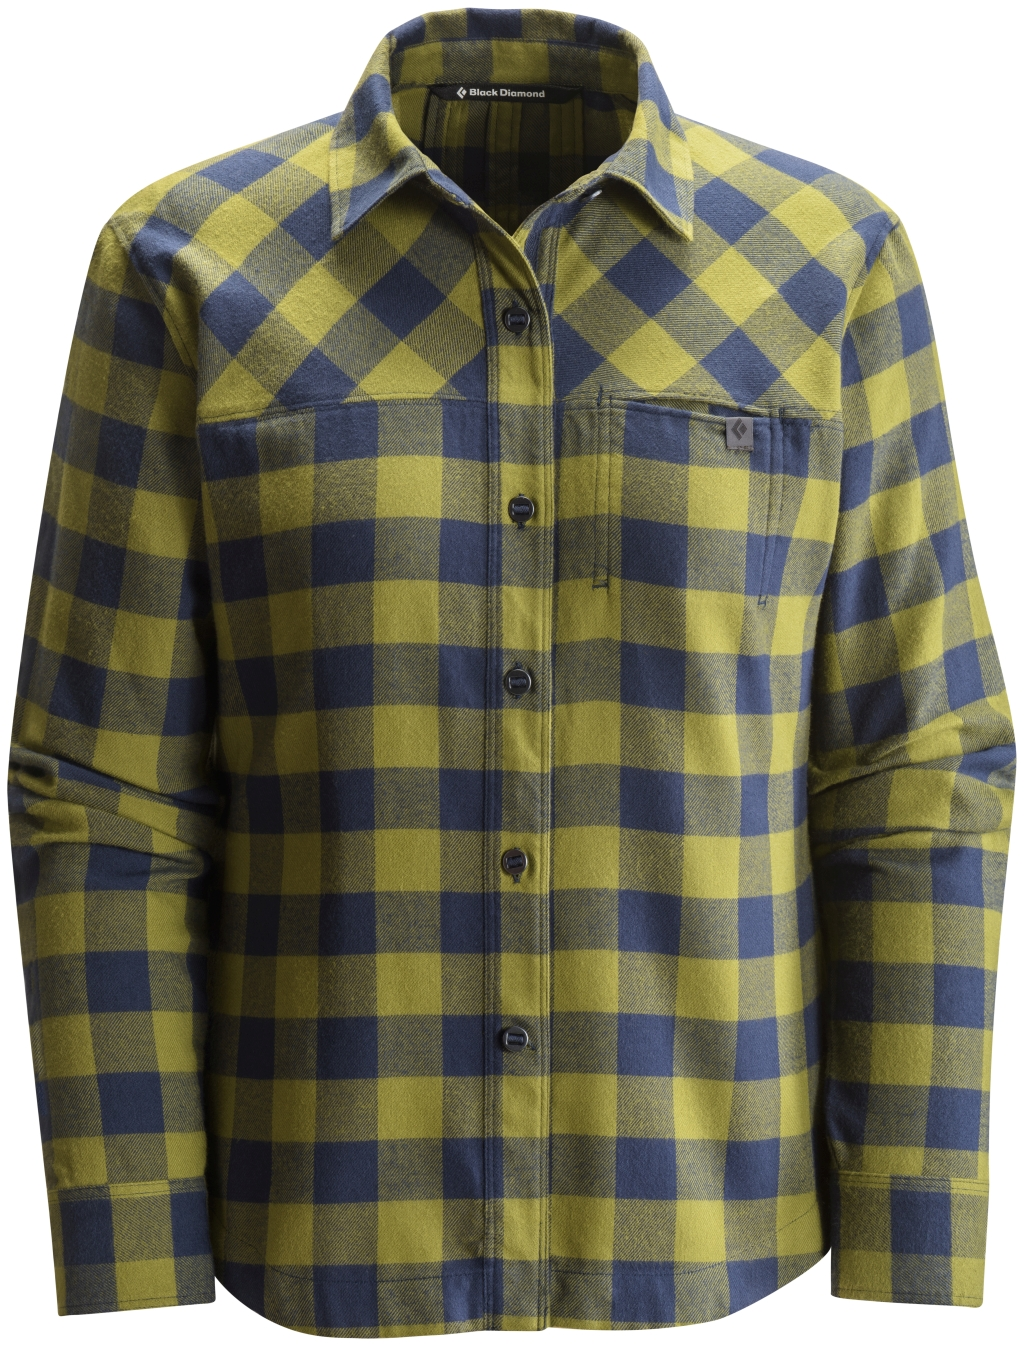 Black Diamond Long-Sleeve Spotter Shirt Women's Sage Captain Gingham-30